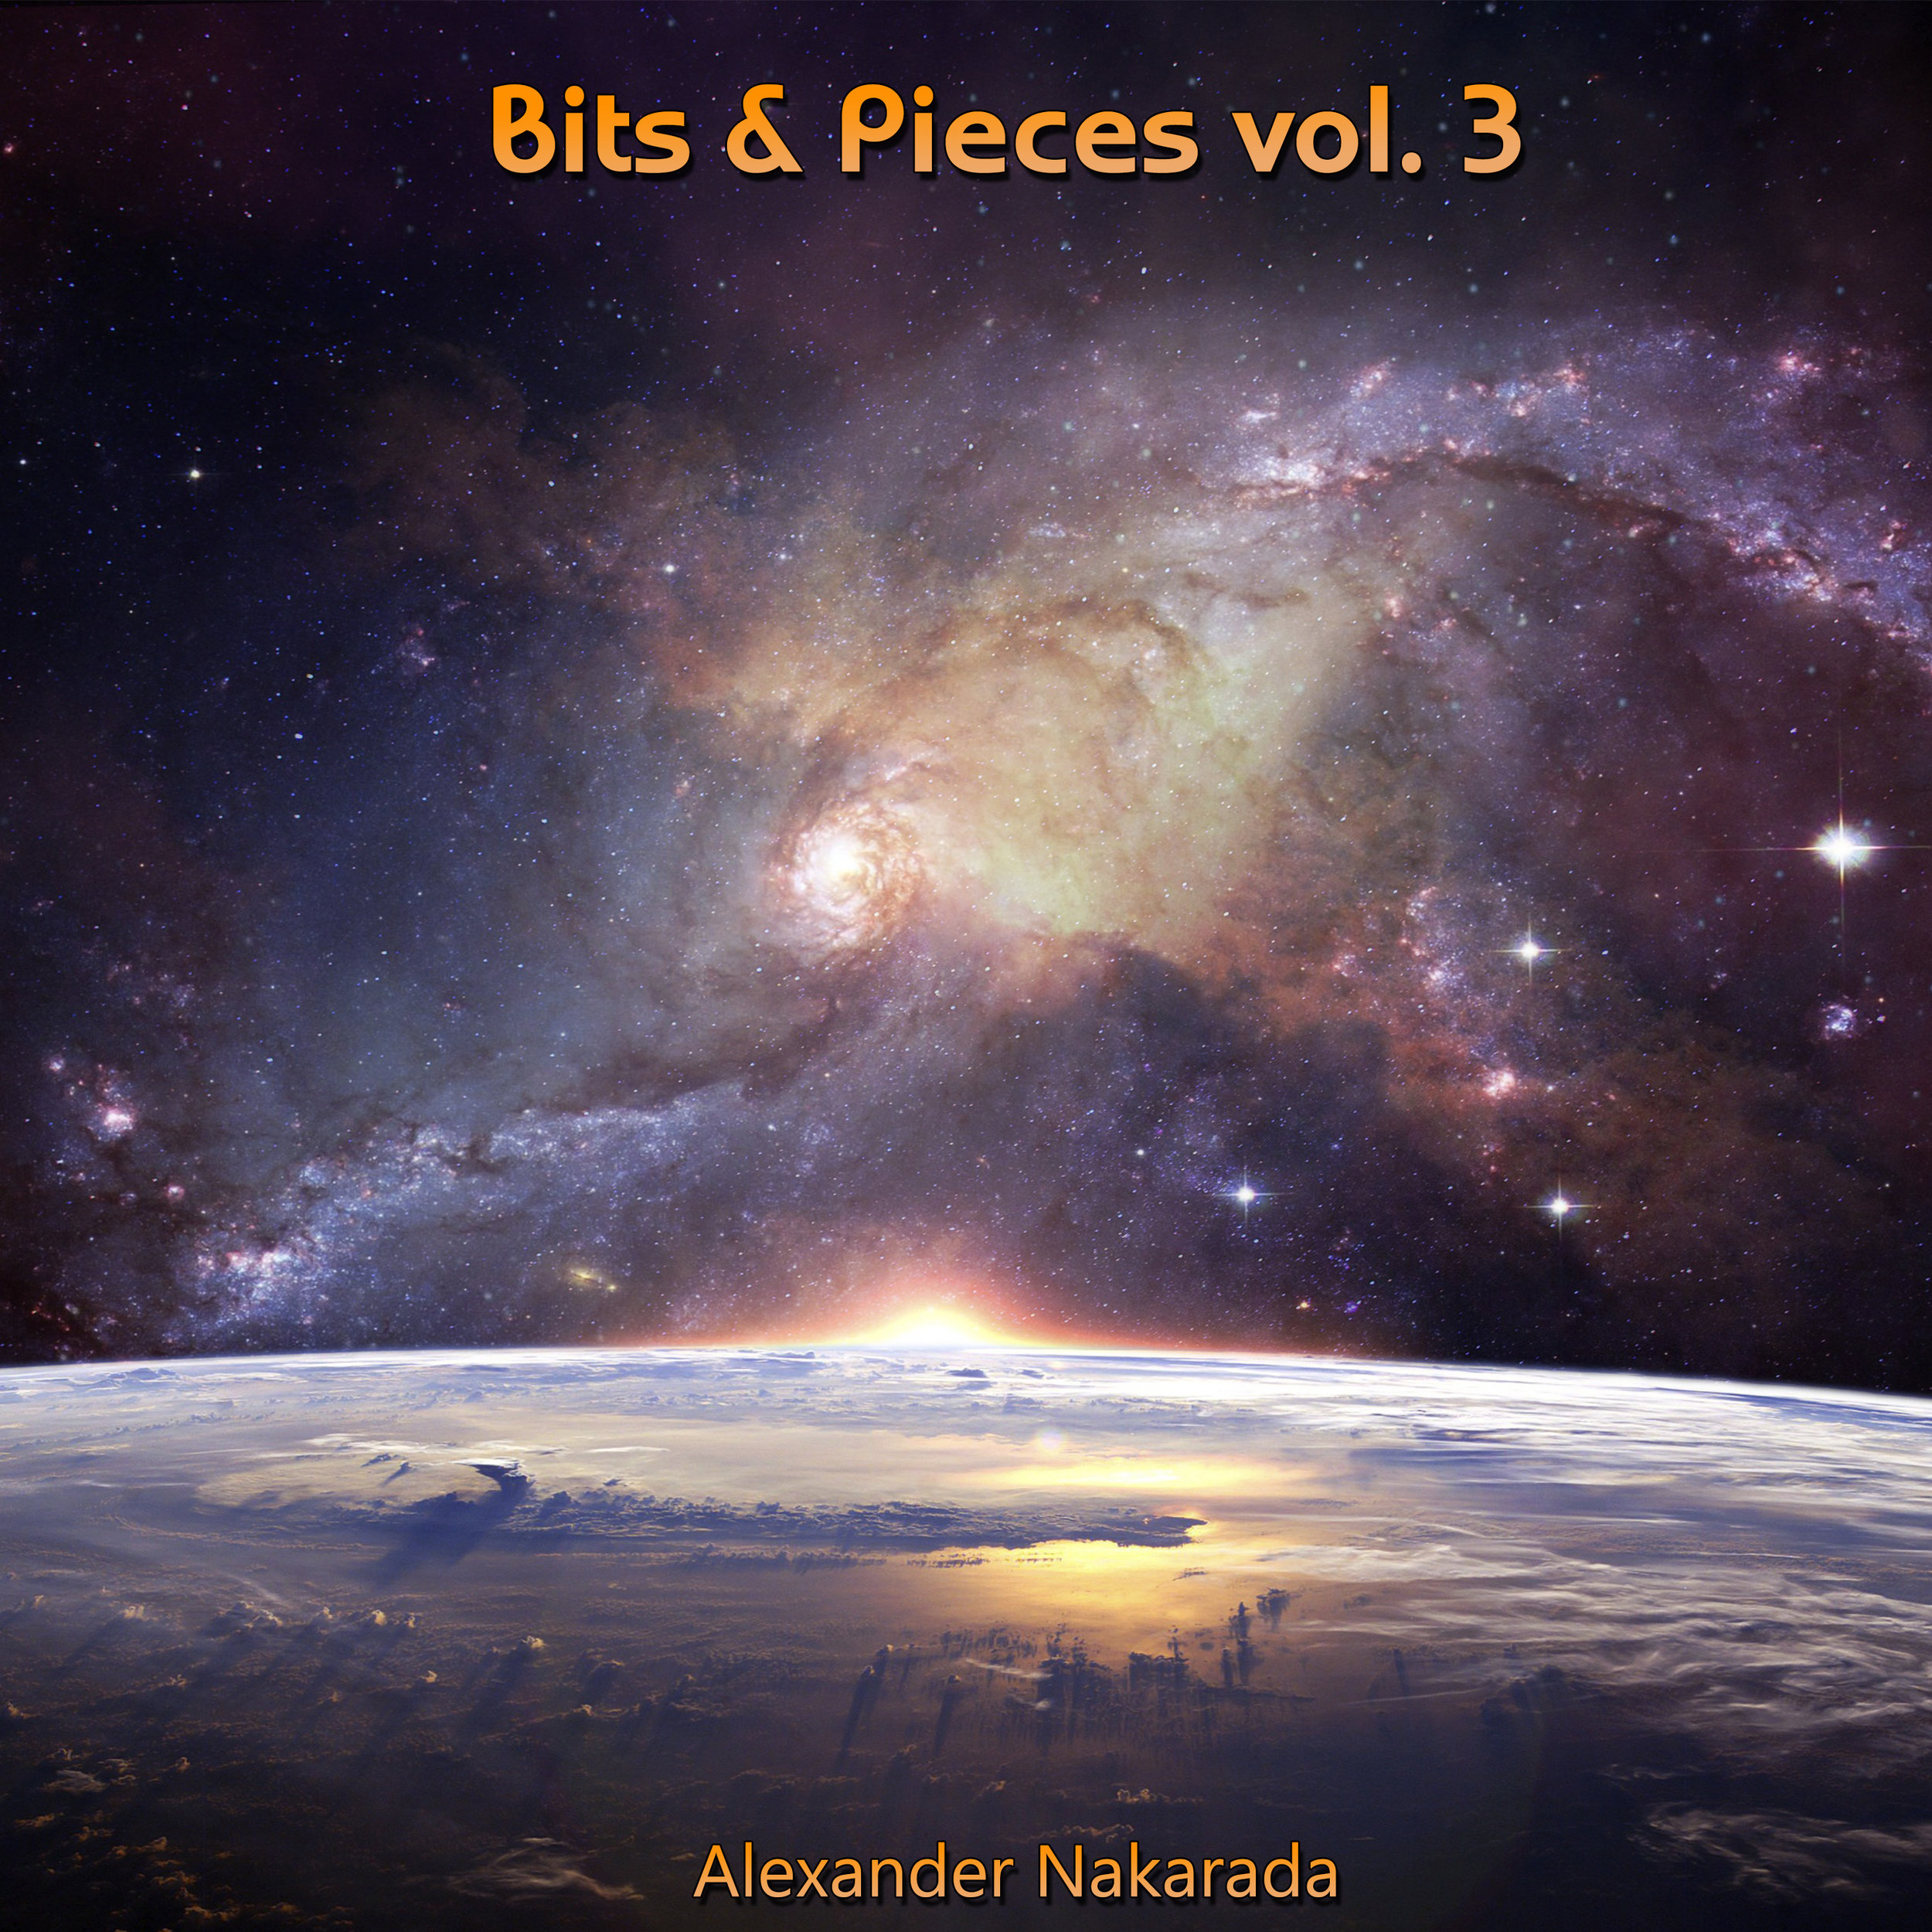 16. Bits & Pieces, vol. 3 - A collection of the newer pieces in the discography. Multiple genres like epic, fantasy and metal.